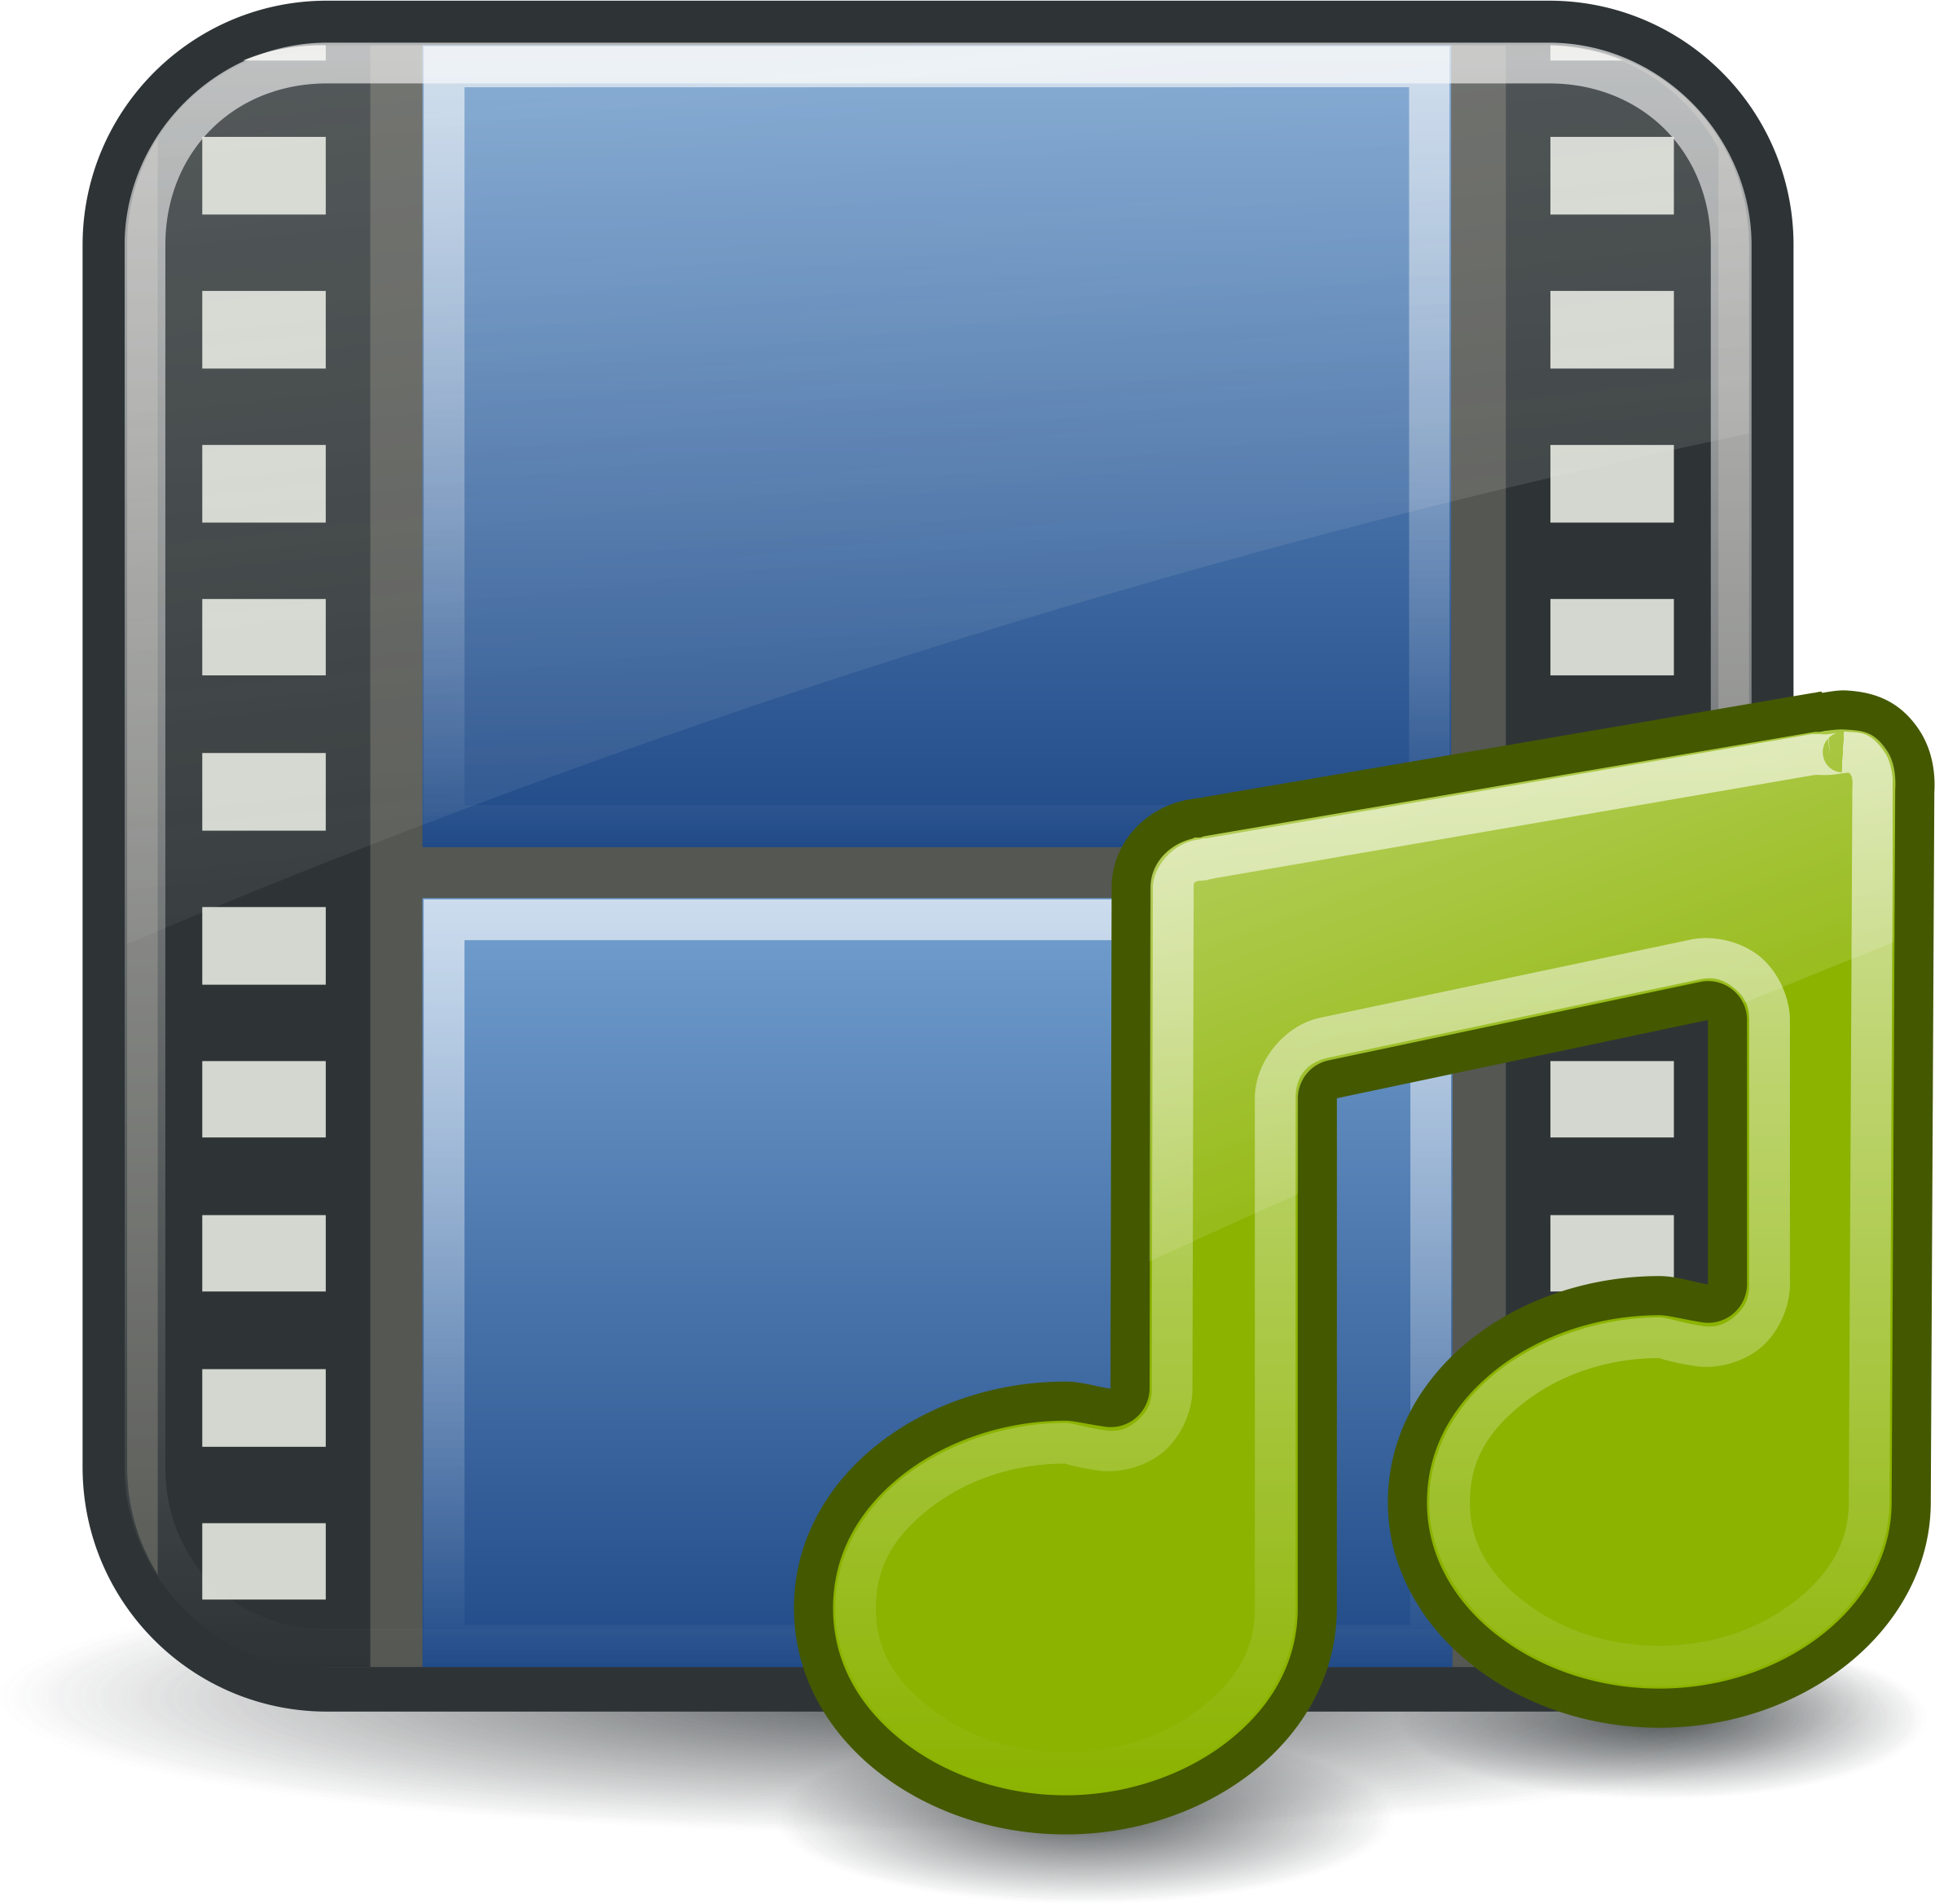 media player by sixsixfive